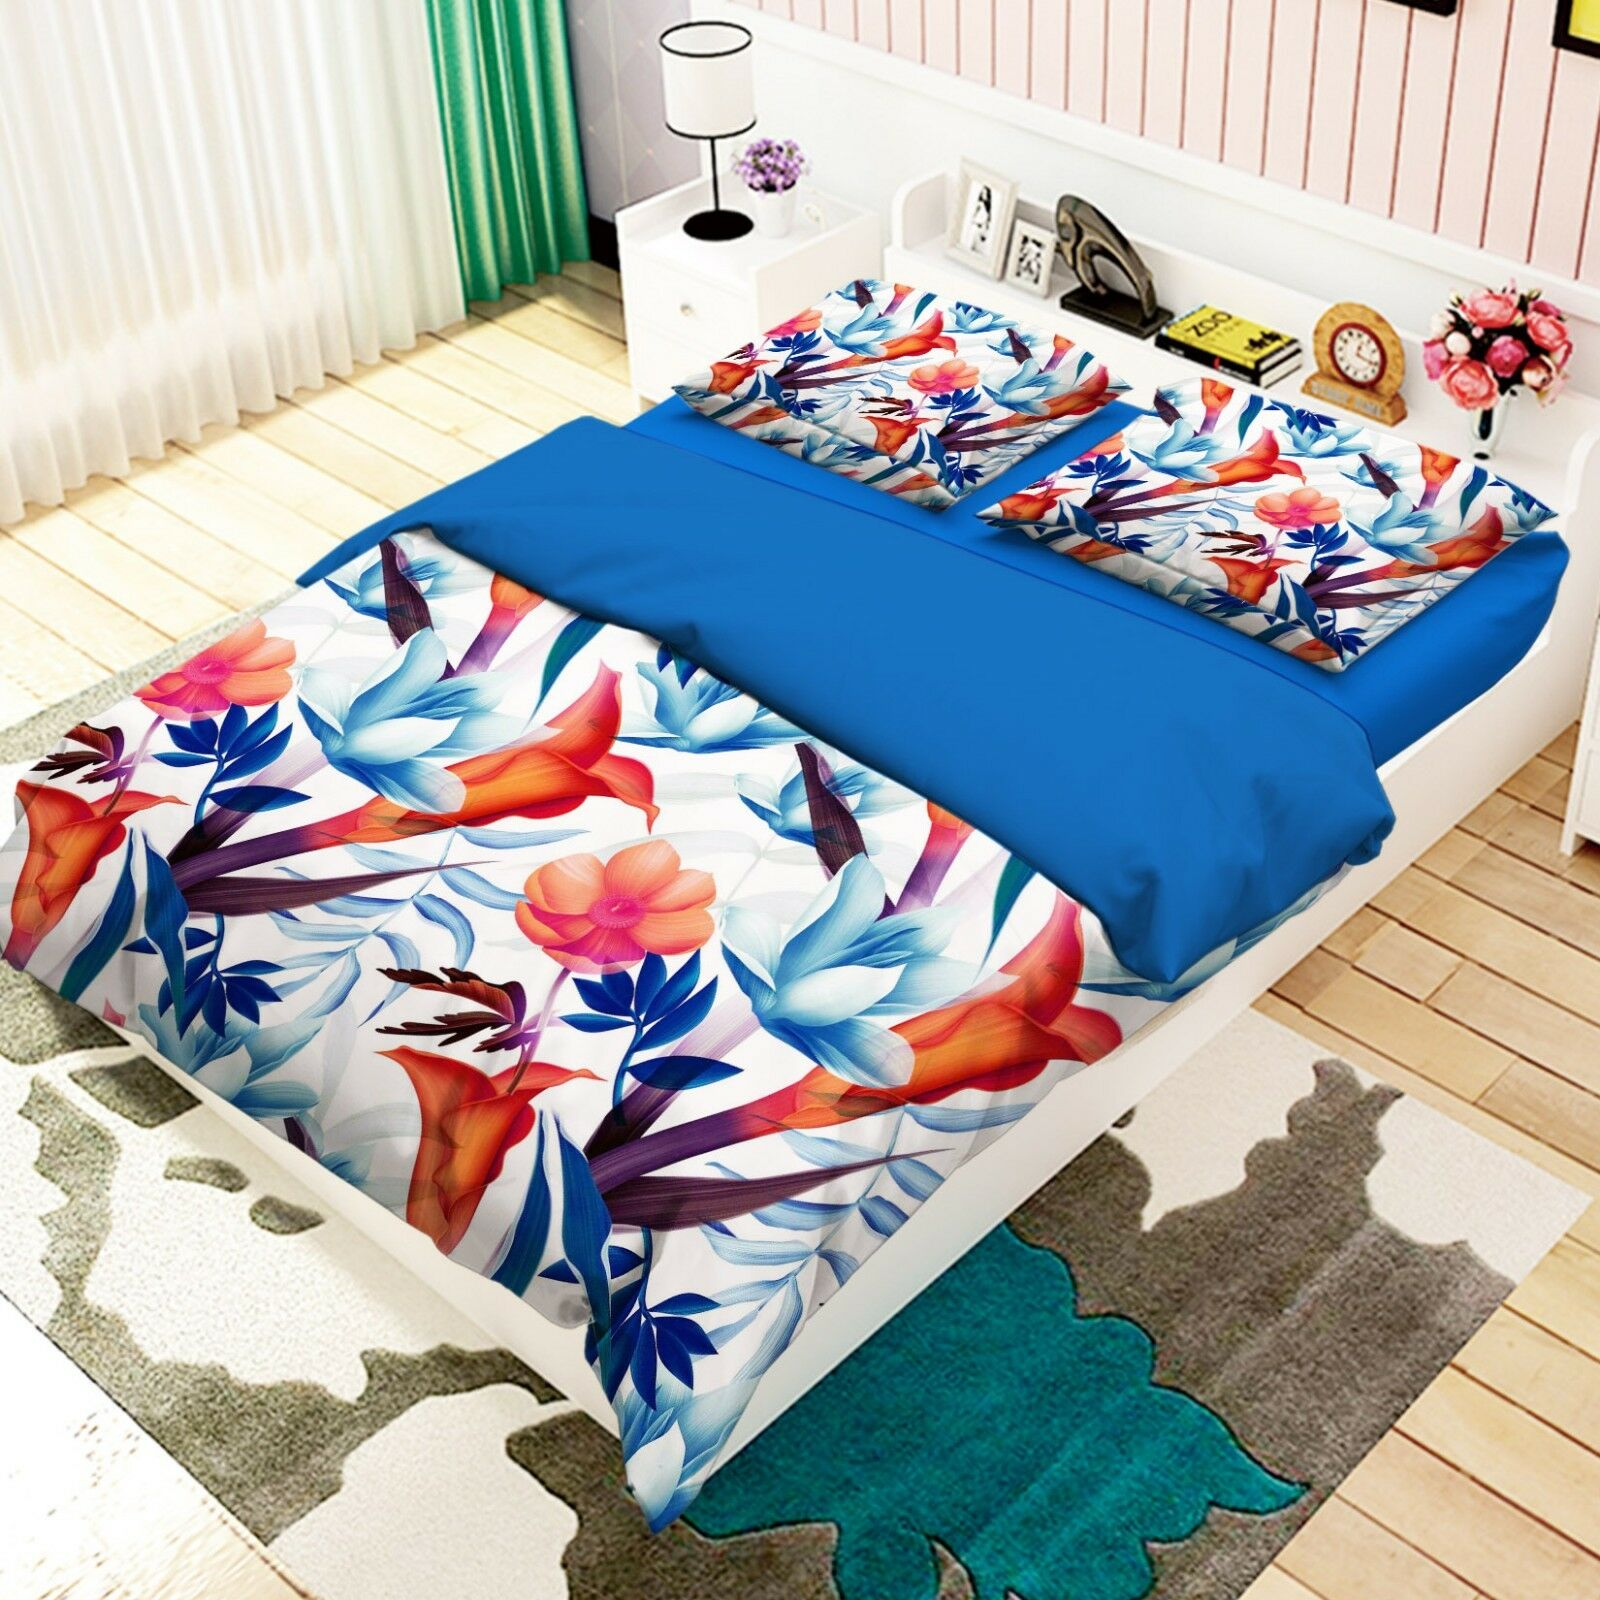 3D Flowers Leaf Paint 26 Bett Pillowcases Quilt Duvet Single Königin König US Summer